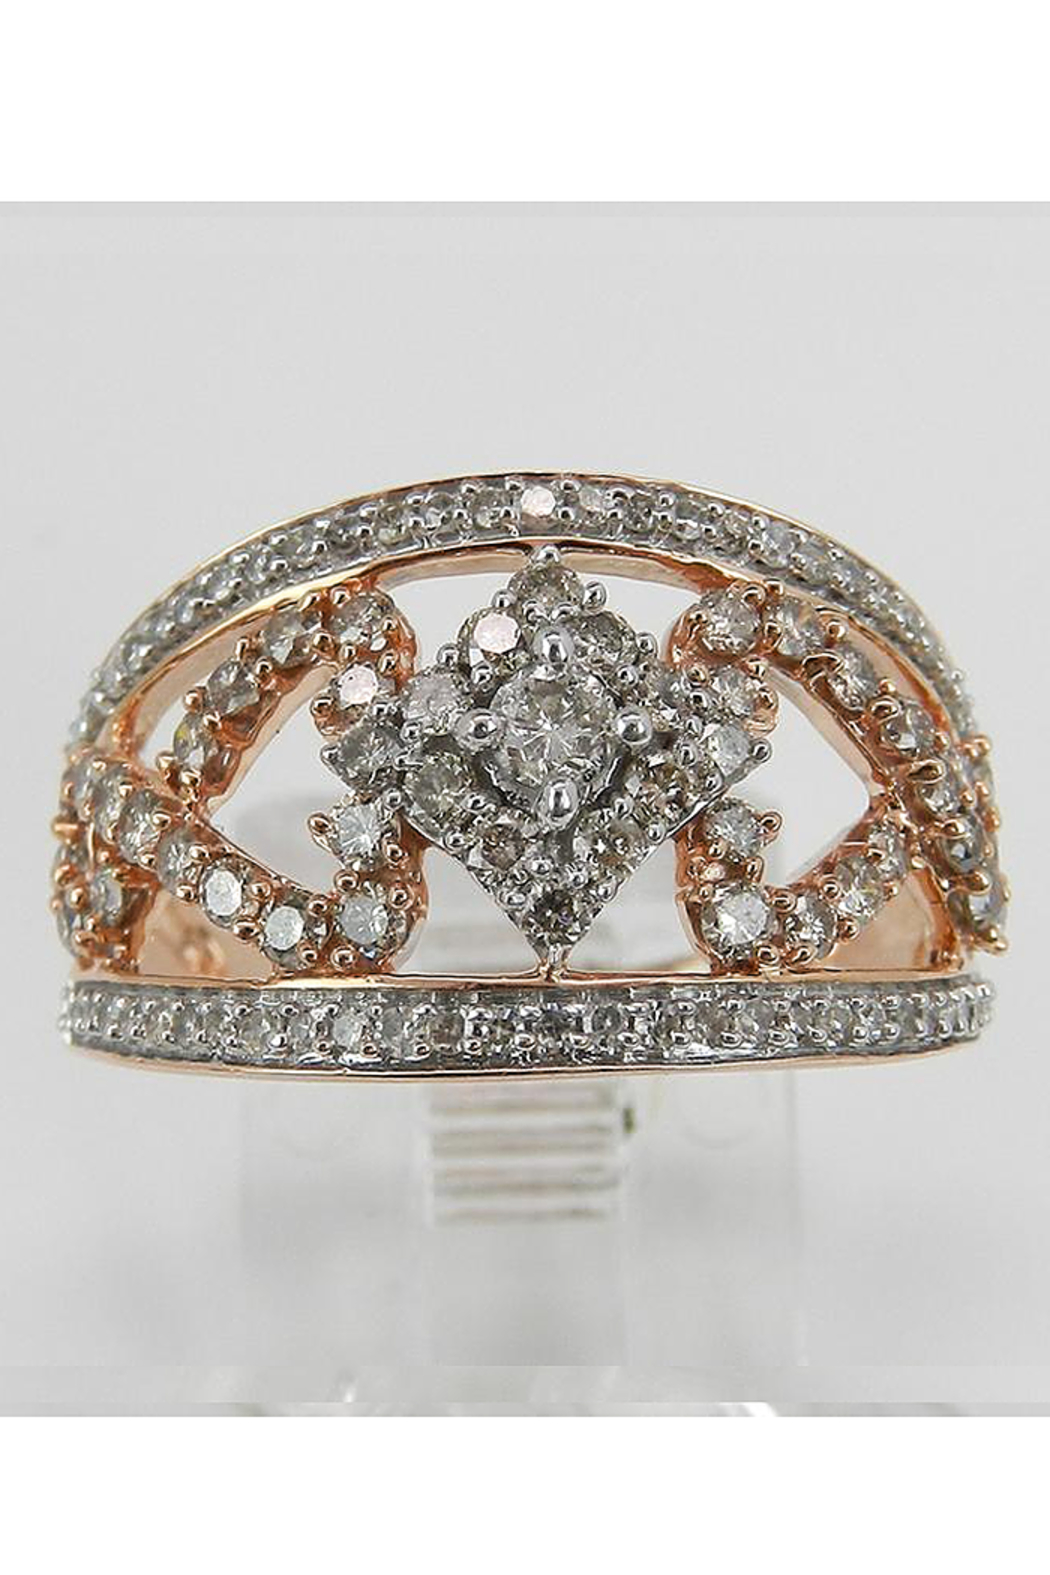 Margolin & Co 1.00 ct Diamond Cluster Heart Cocktail Ring Statement Band Rose Pink Gold Size 7.25 - Back Cropped Image